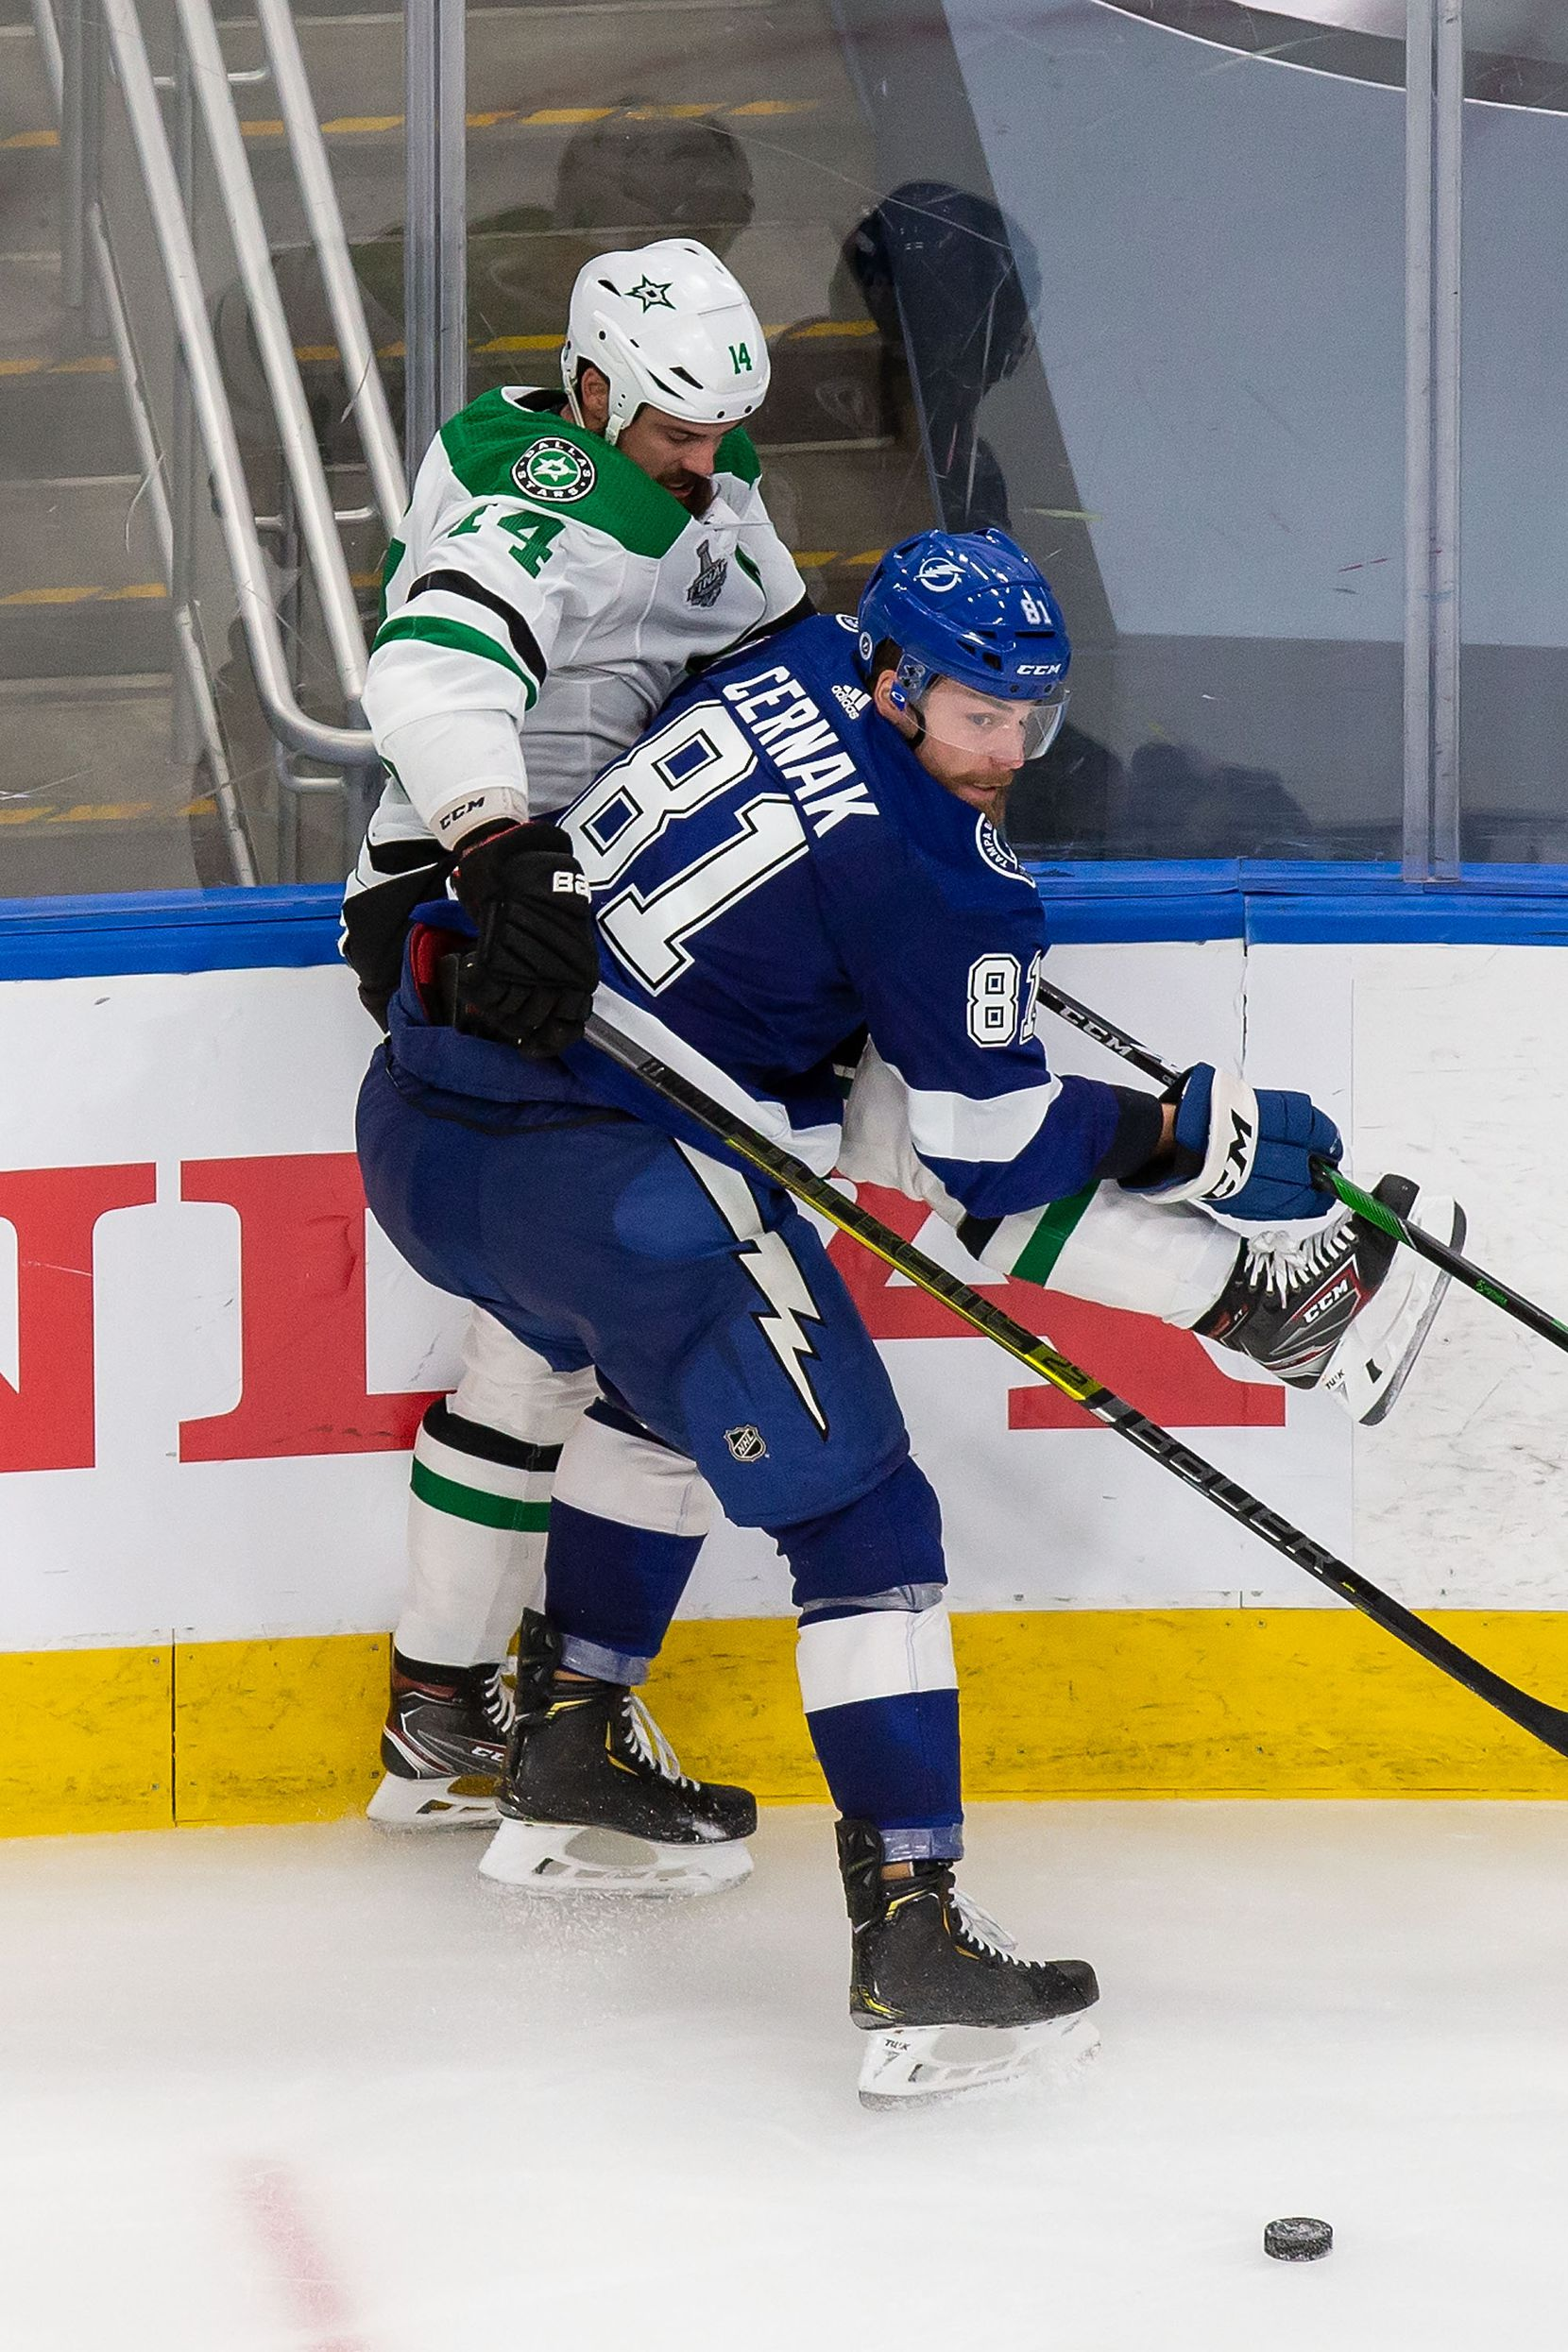 Jamie Benn (14) of the Dallas Stars battles against Erik Cernak (81) of the Tampa Bay Lightning during Game Two of the Stanley Cup Final at Rogers Place in Edmonton, Alberta, Canada on Monday, September 21, 2020. (Codie McLachlan/Special Contributor)